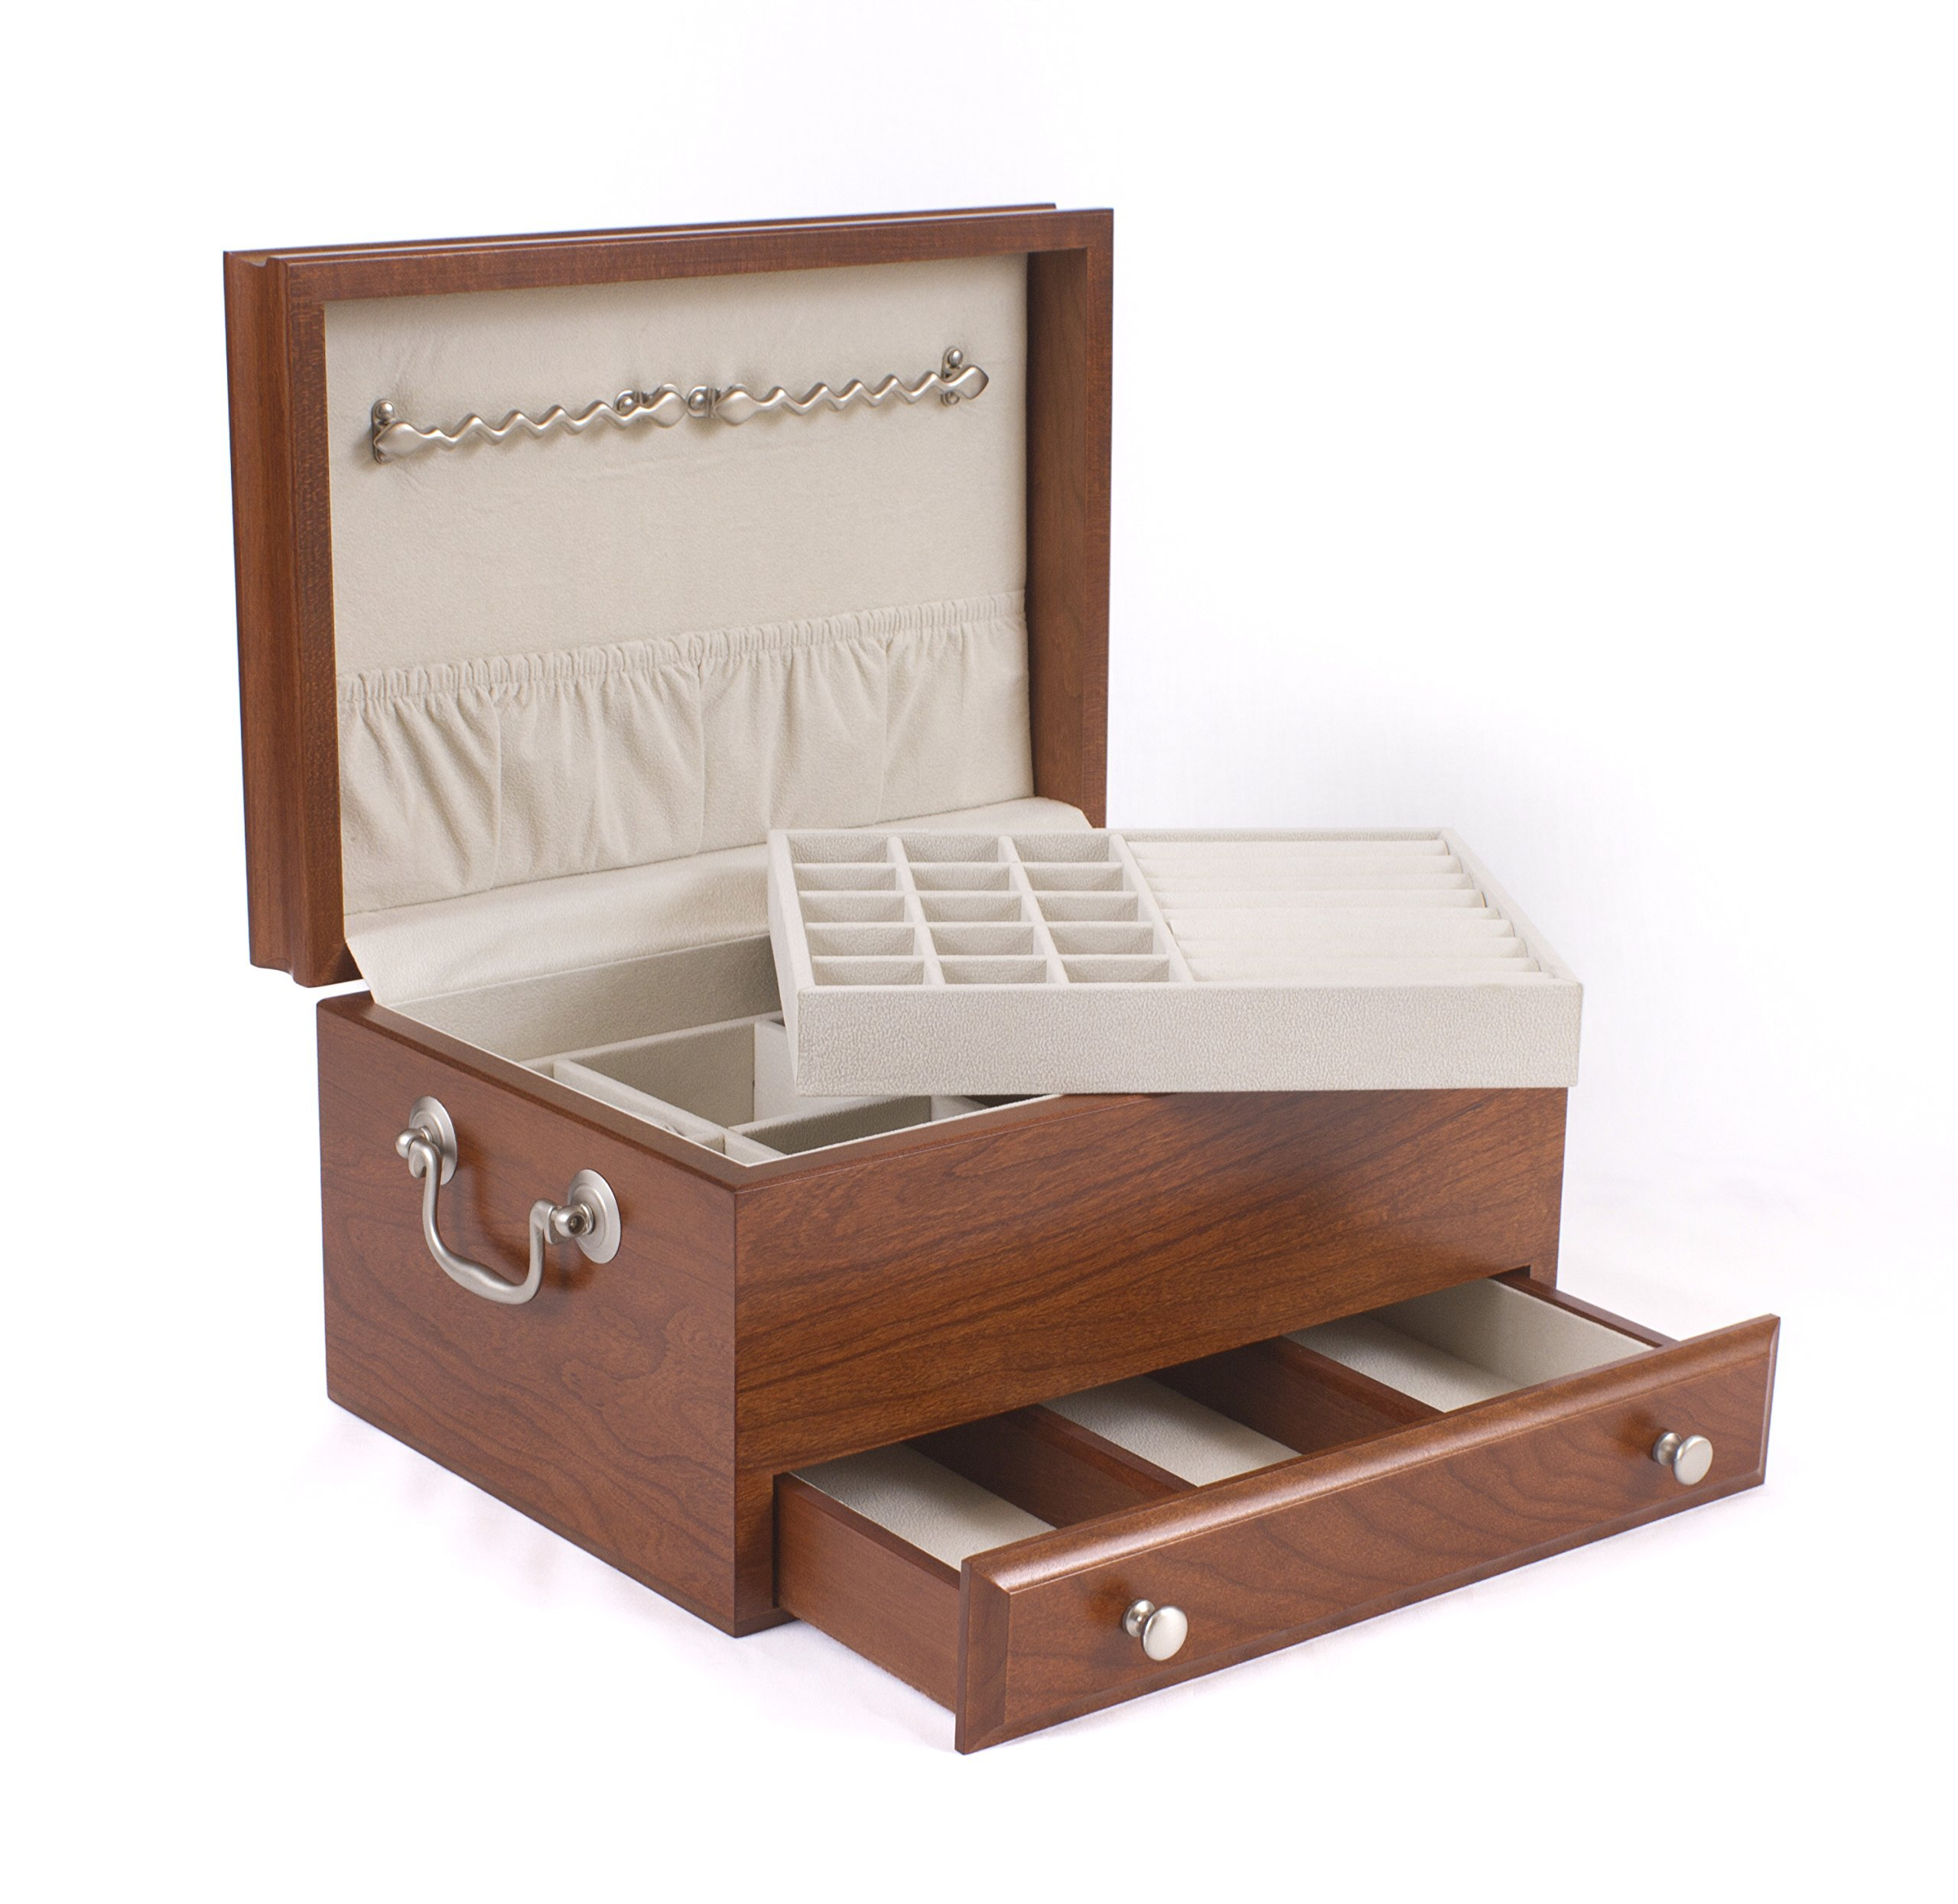 American Chest #J11C CONTESSA 1-Drawer Solid Cherry Jewel Chest with Lift-Out Tray; MADE in USA